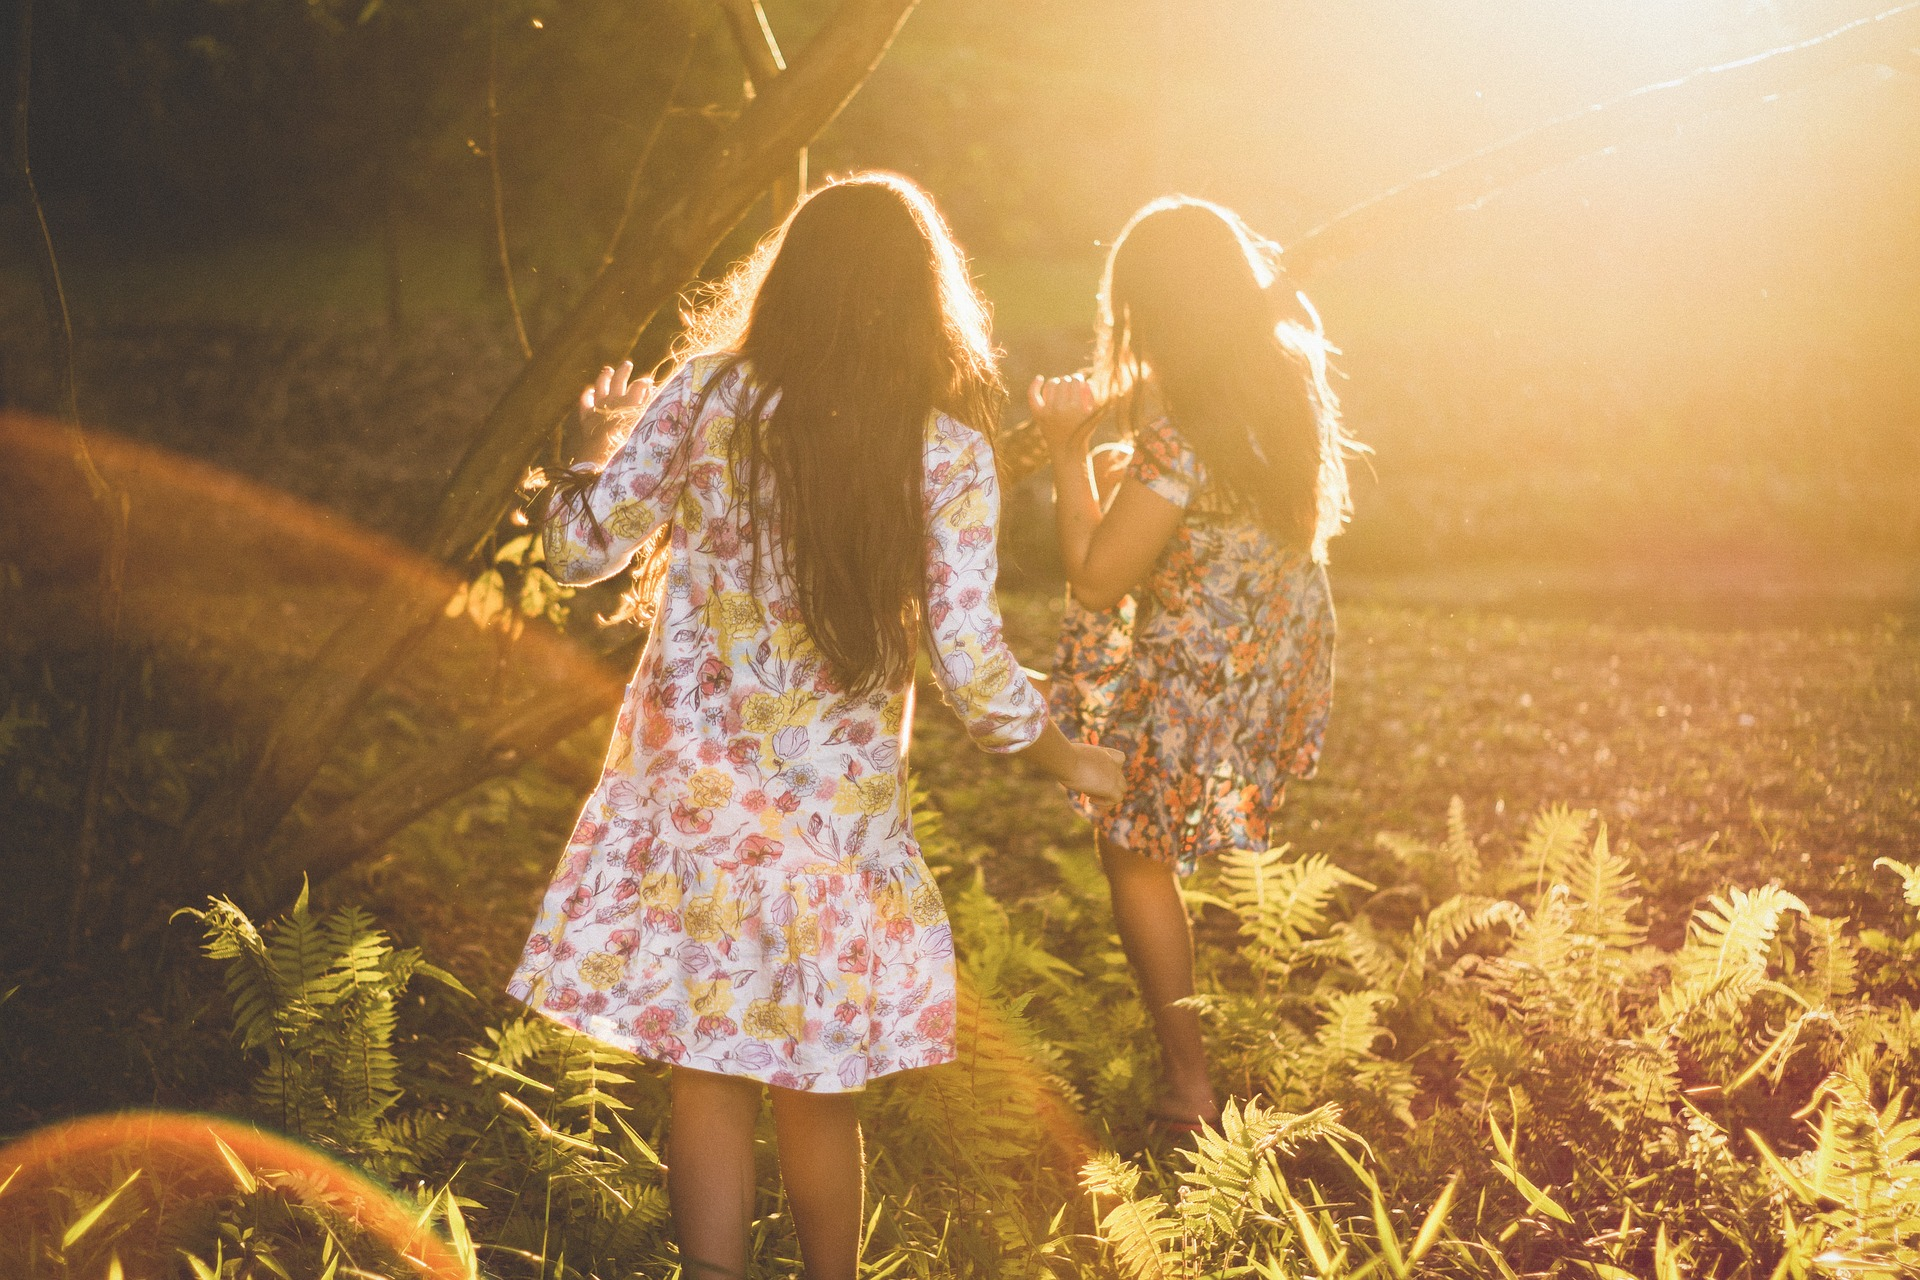 Two girls standing in the sun on a farm battling Anorexia